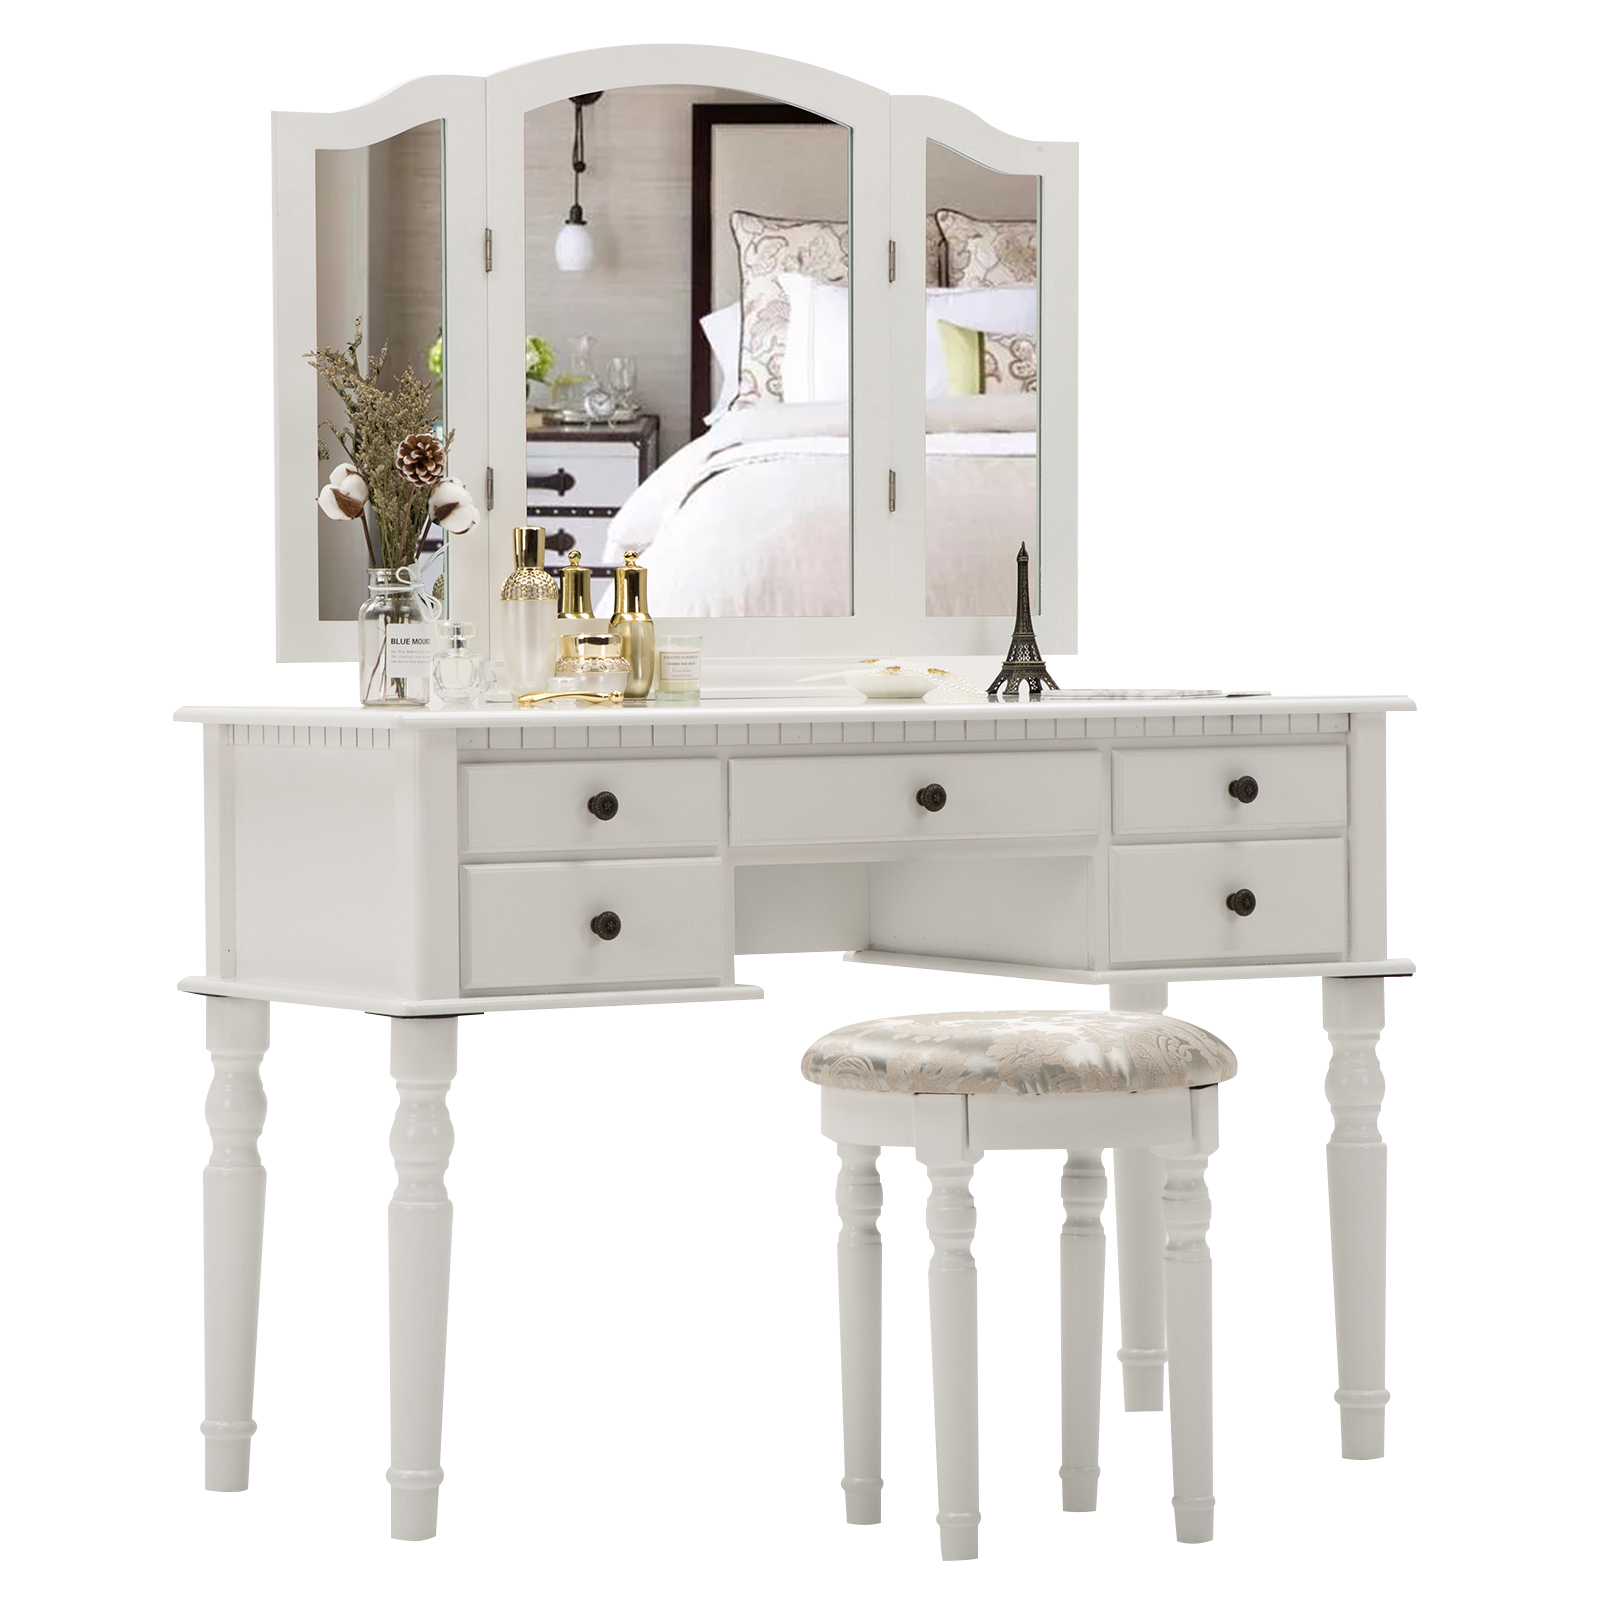 Astounding Details About Vanity Makeup Dressing Table Set Folding Mirror Desk Dresser With Stool White Caraccident5 Cool Chair Designs And Ideas Caraccident5Info